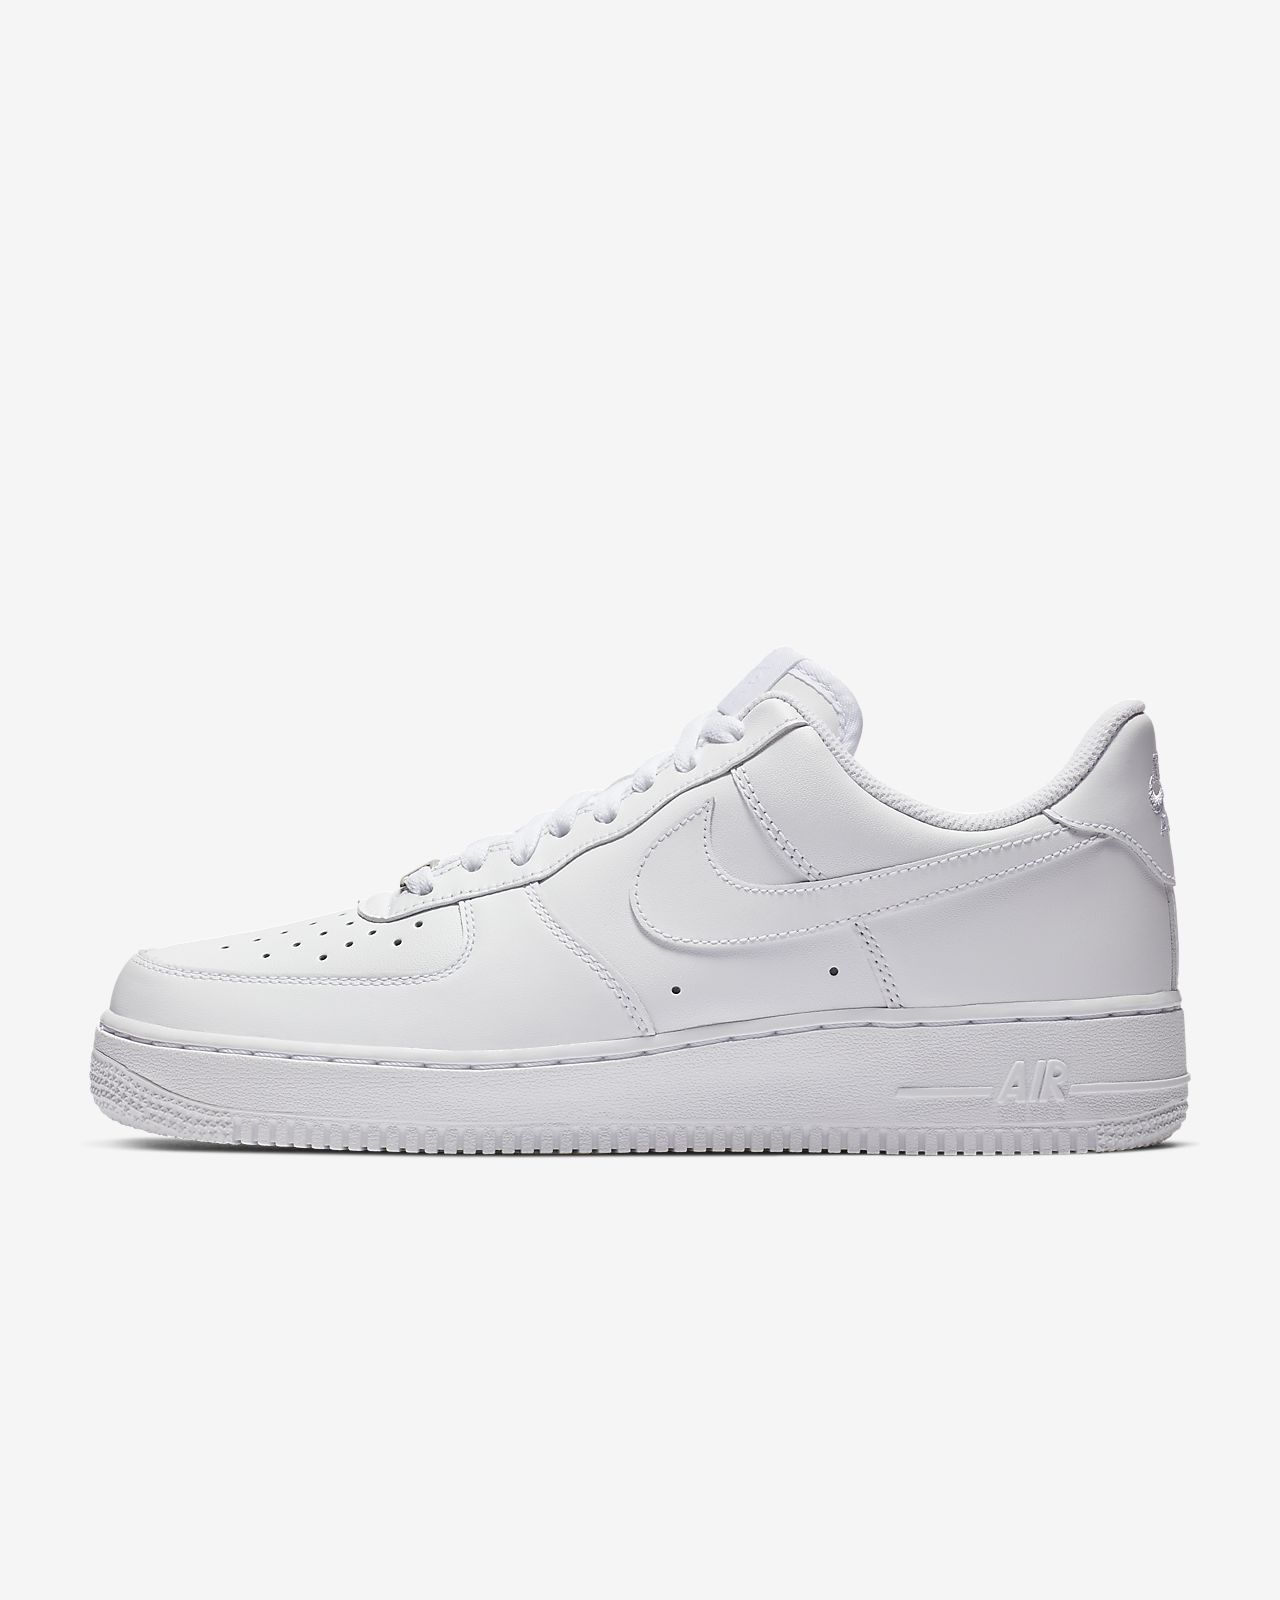 Officiel Femmes Hommes (Nike)Nike Air Force 1 2019 Nike's